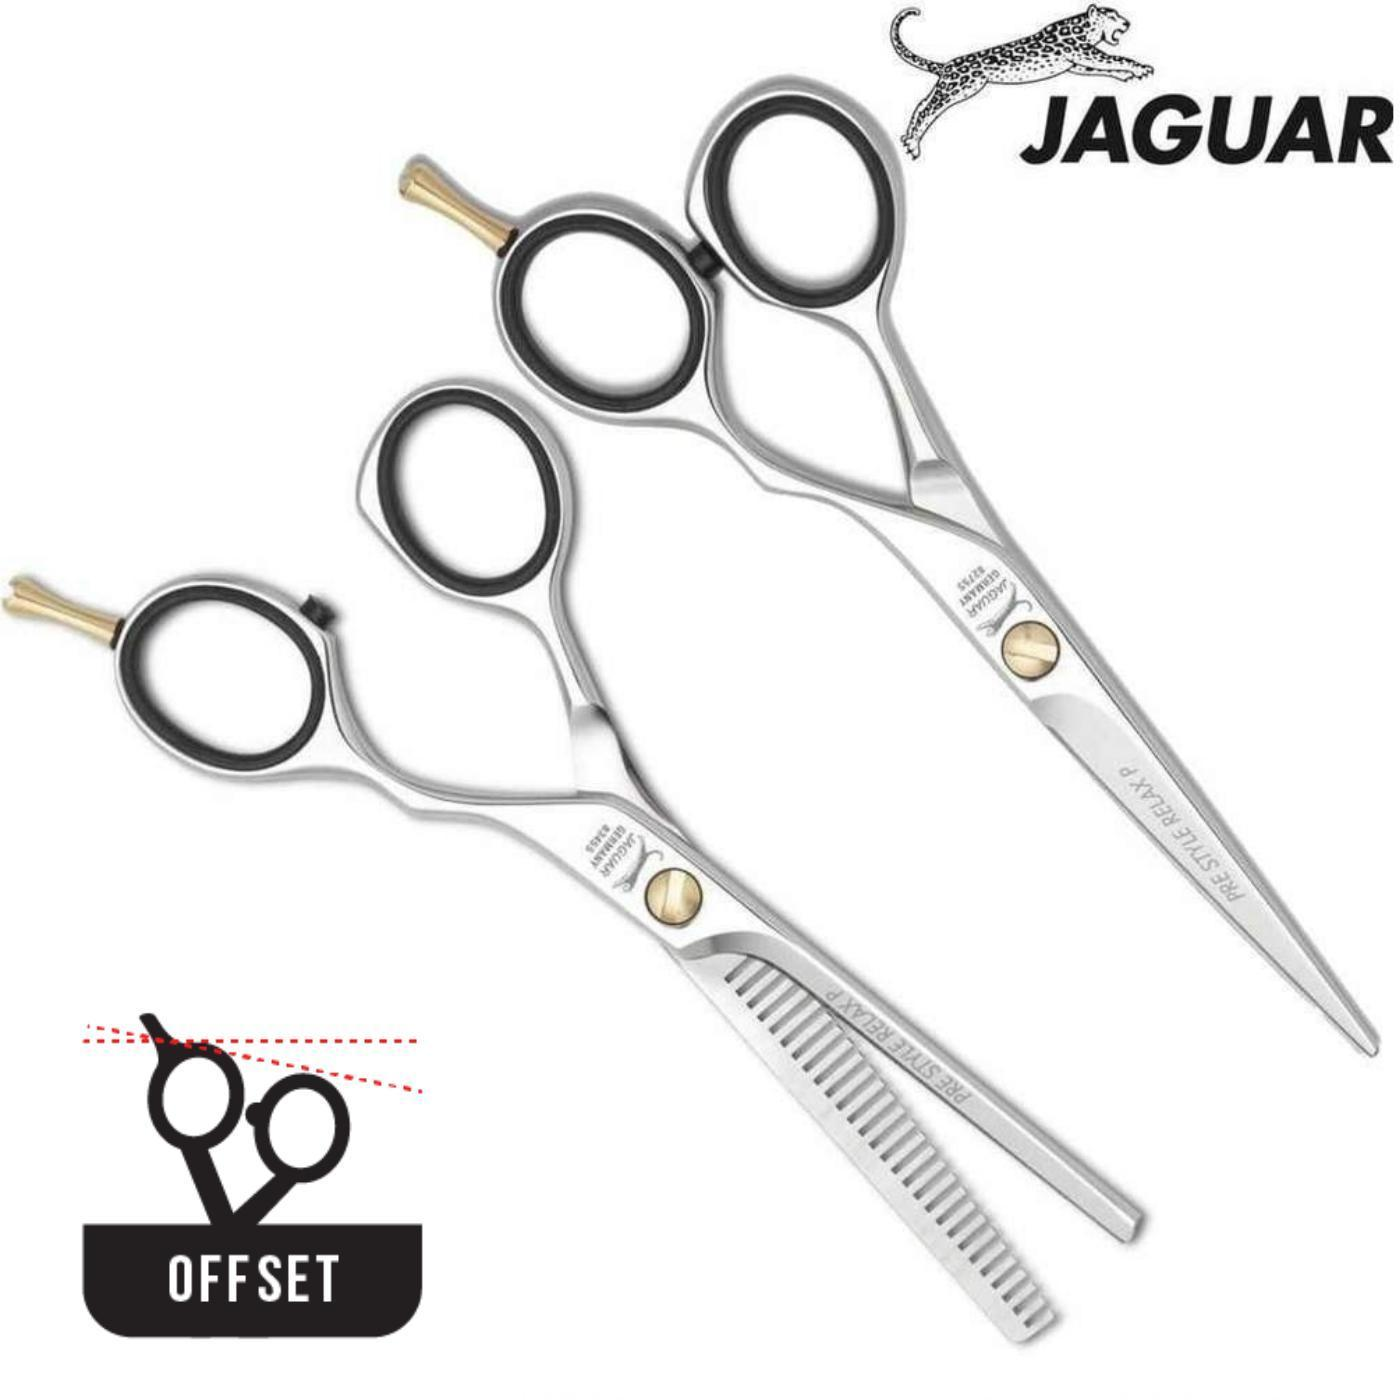 Jaguar Pre Style Relax Cutting & Thinning Set - Japan Scissors